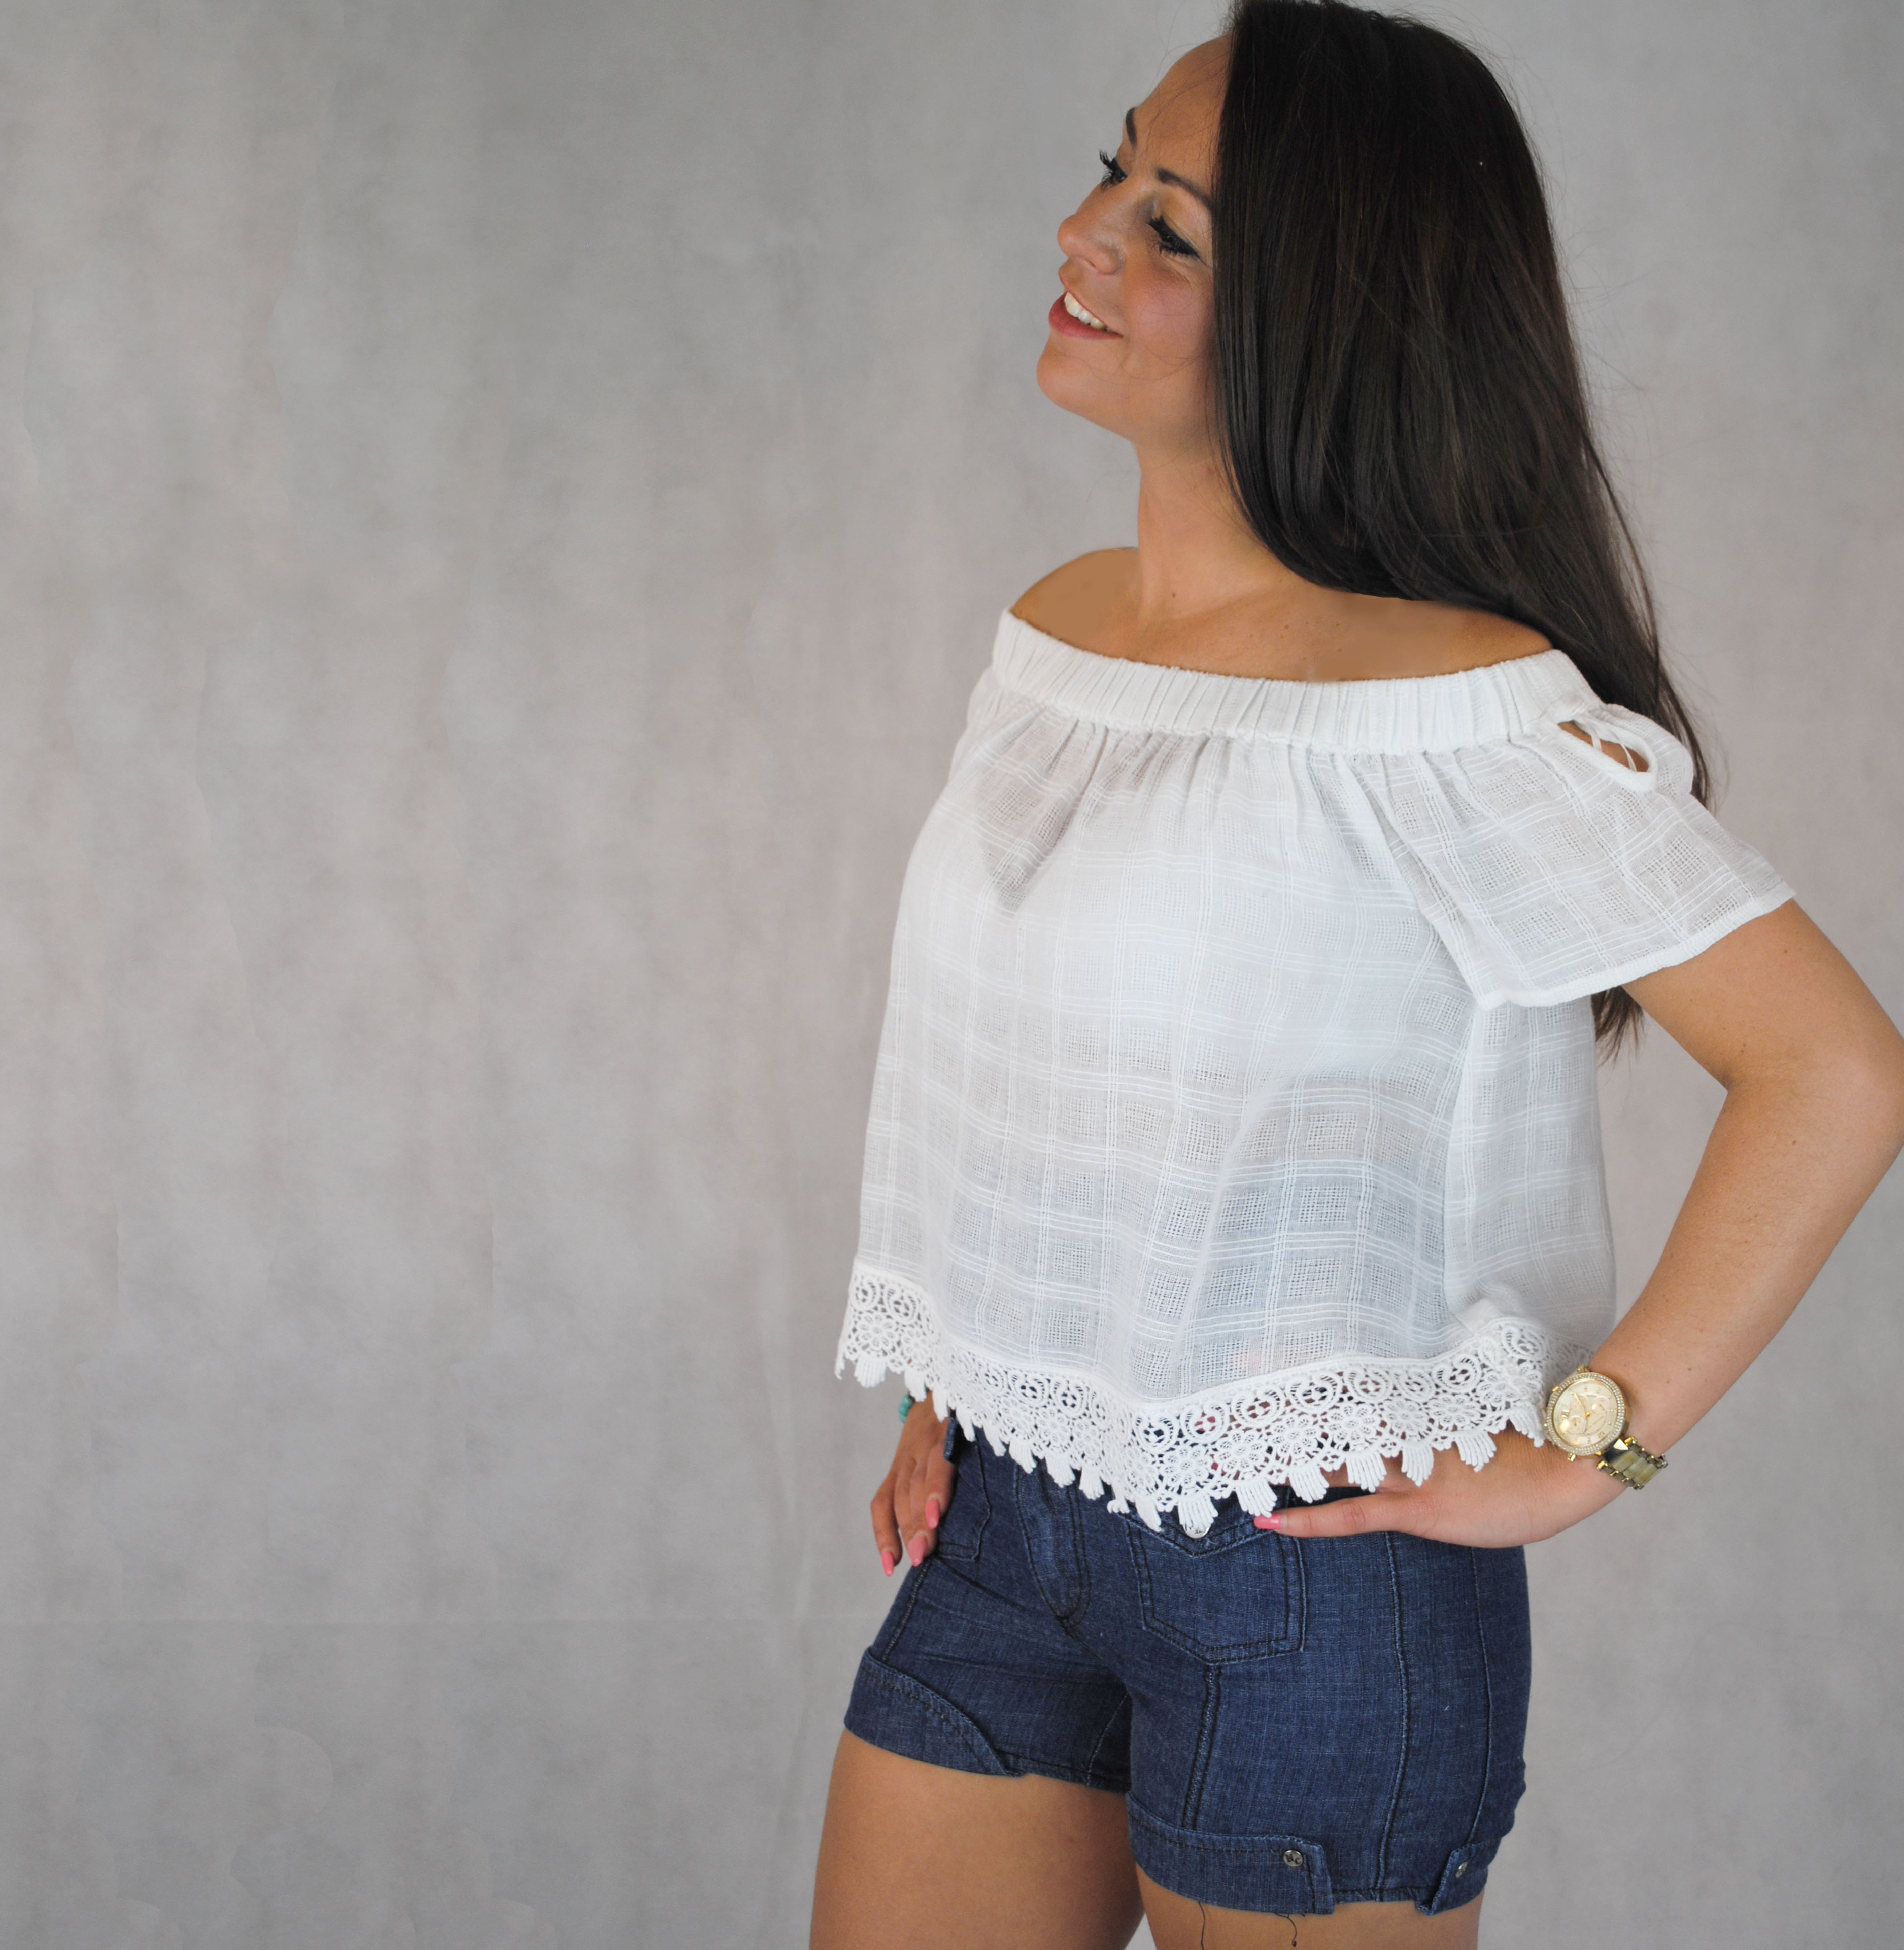 2c38a819a0955 ... Off the shoulder white cotton gypsy style top with crochet hem. Sold  Out New. DSC 0114. Scroll Up. Scroll Down